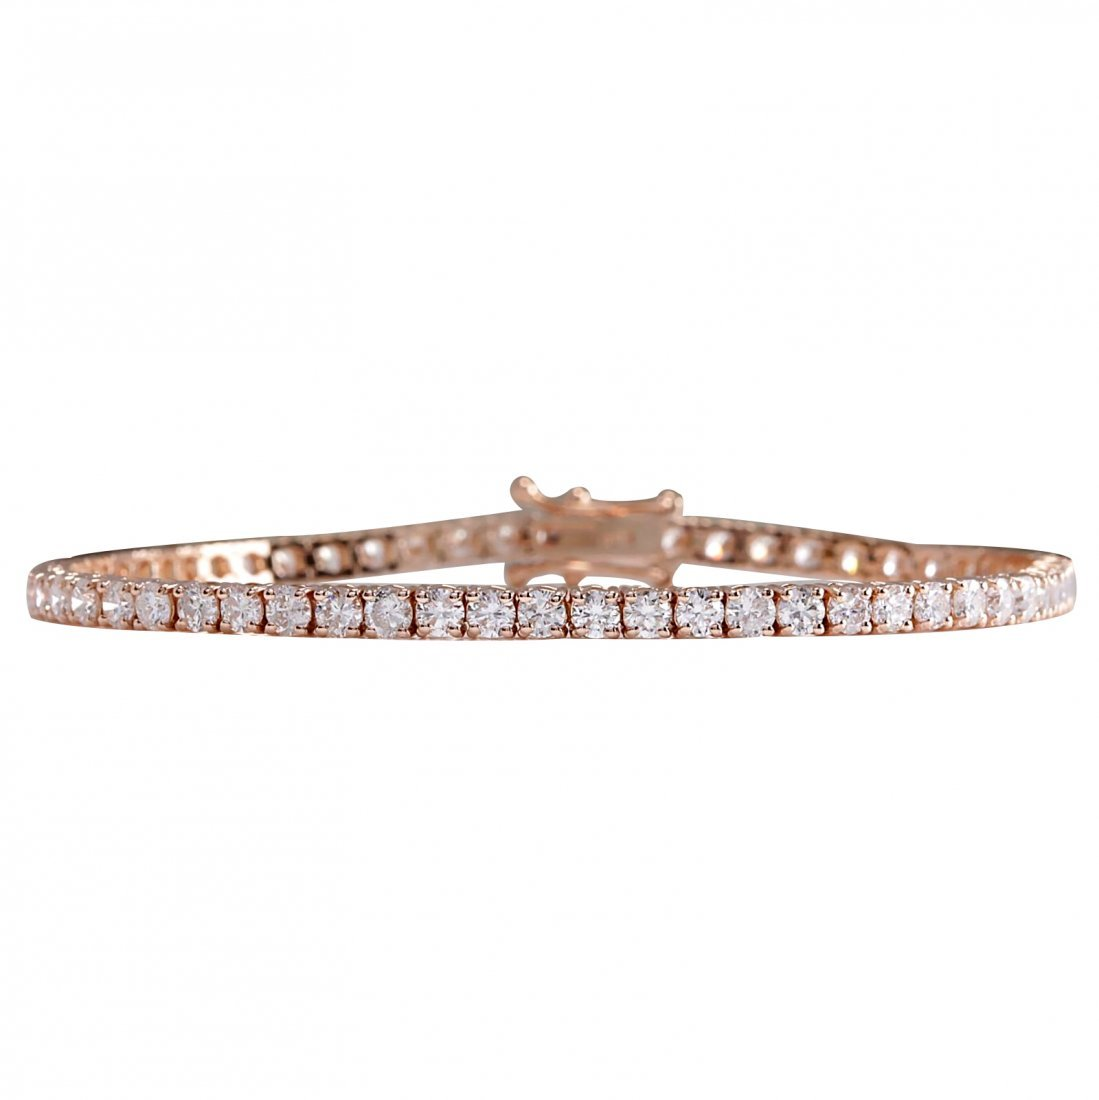 5.55CTW Natural Diamond Bracelet In 14K Rose Gold